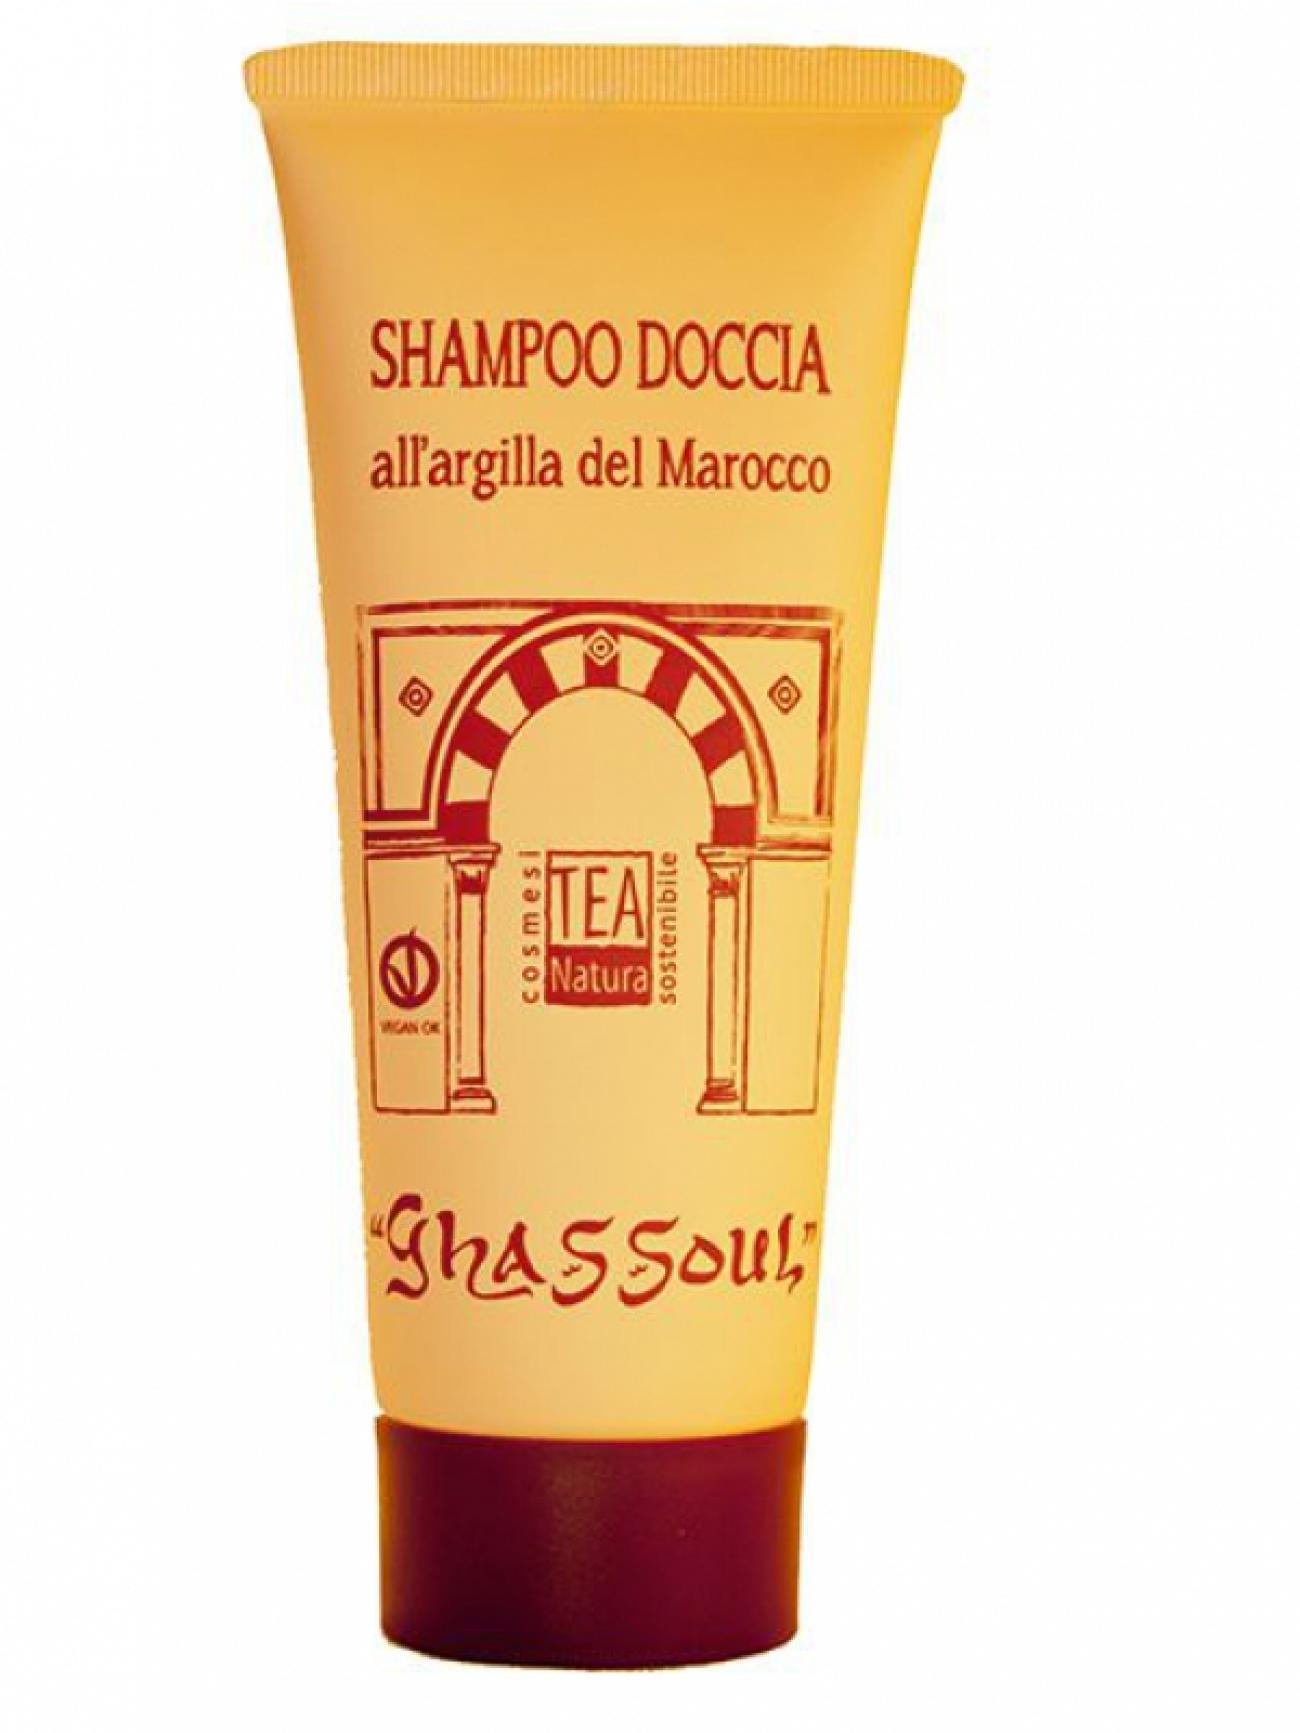 Shampoo al Ghassoul tubo 200ml